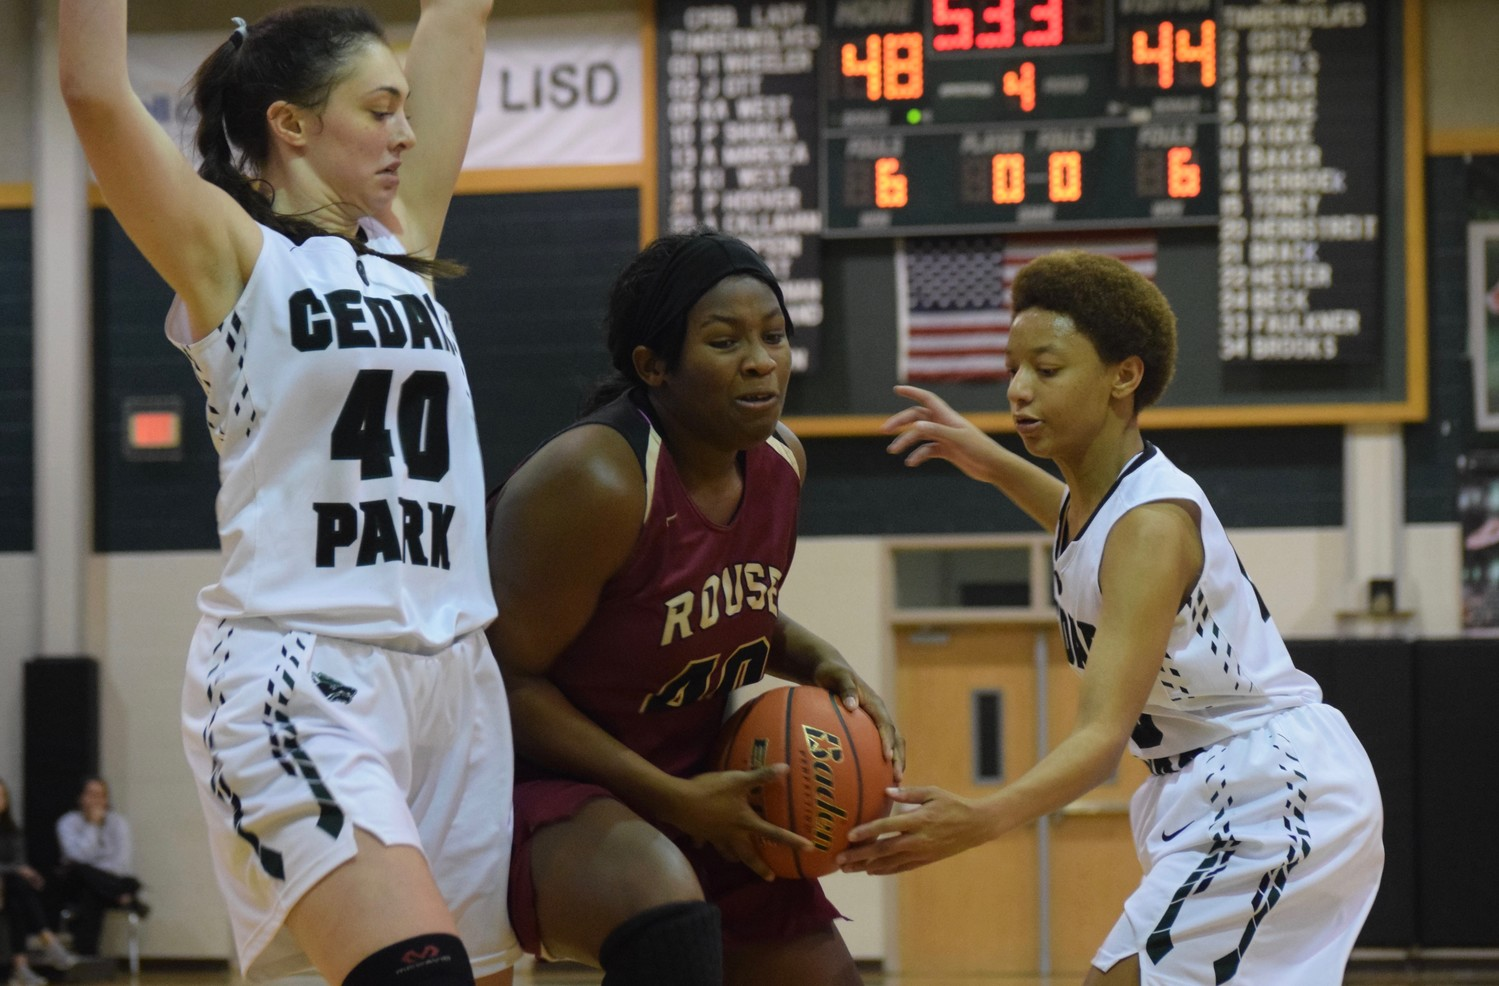 Rouse senior Ashley Thomson, center, scored 16 points, but No. 11 Rouse lost to No. 15 Cedar Park 51-44 Tuesday night.